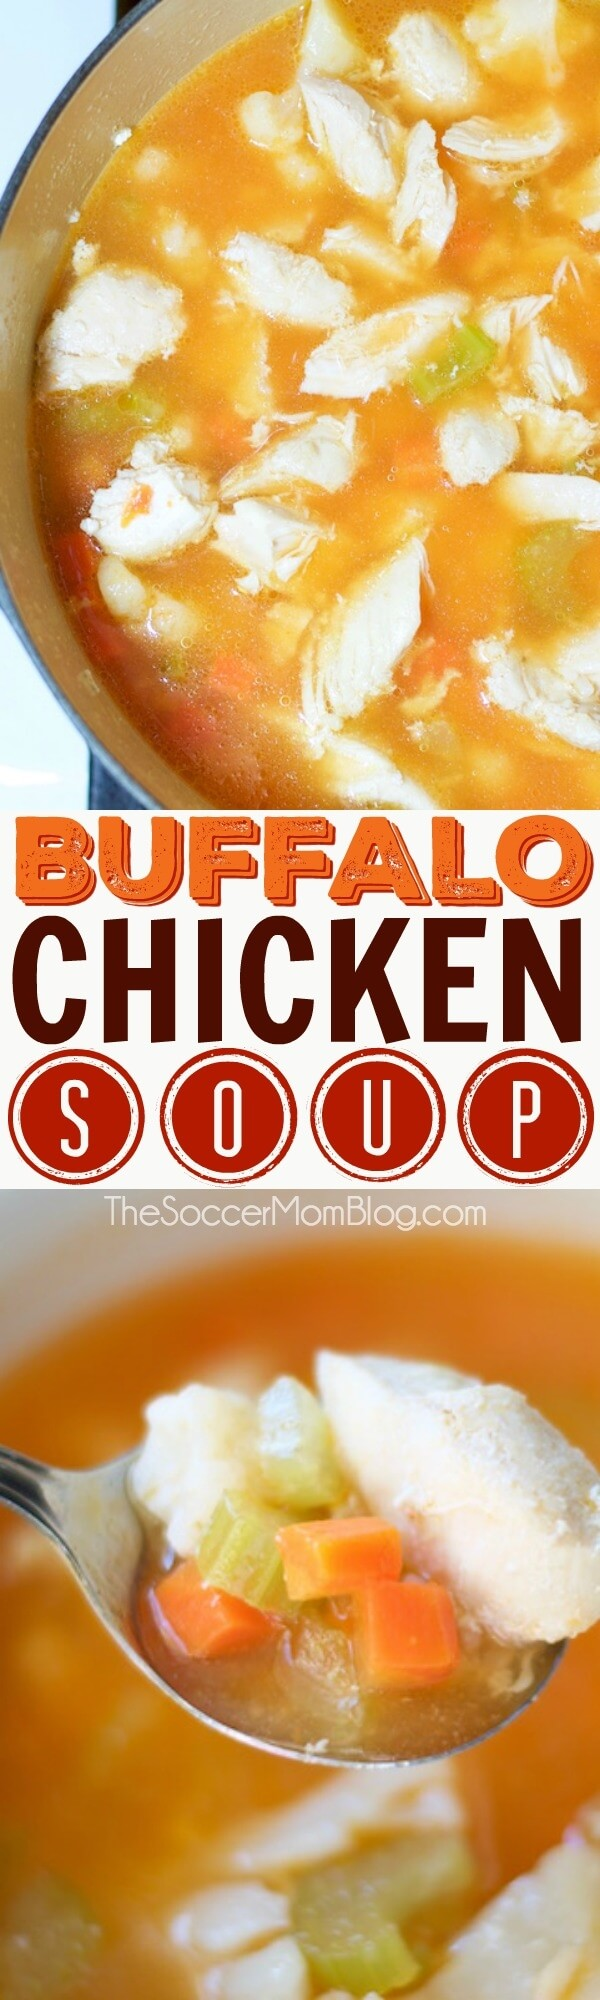 This zesty Buffalo Chicken Soup is sure to be a new family favorite! An easy recipe that will have dinner on the table in 30 minutes!